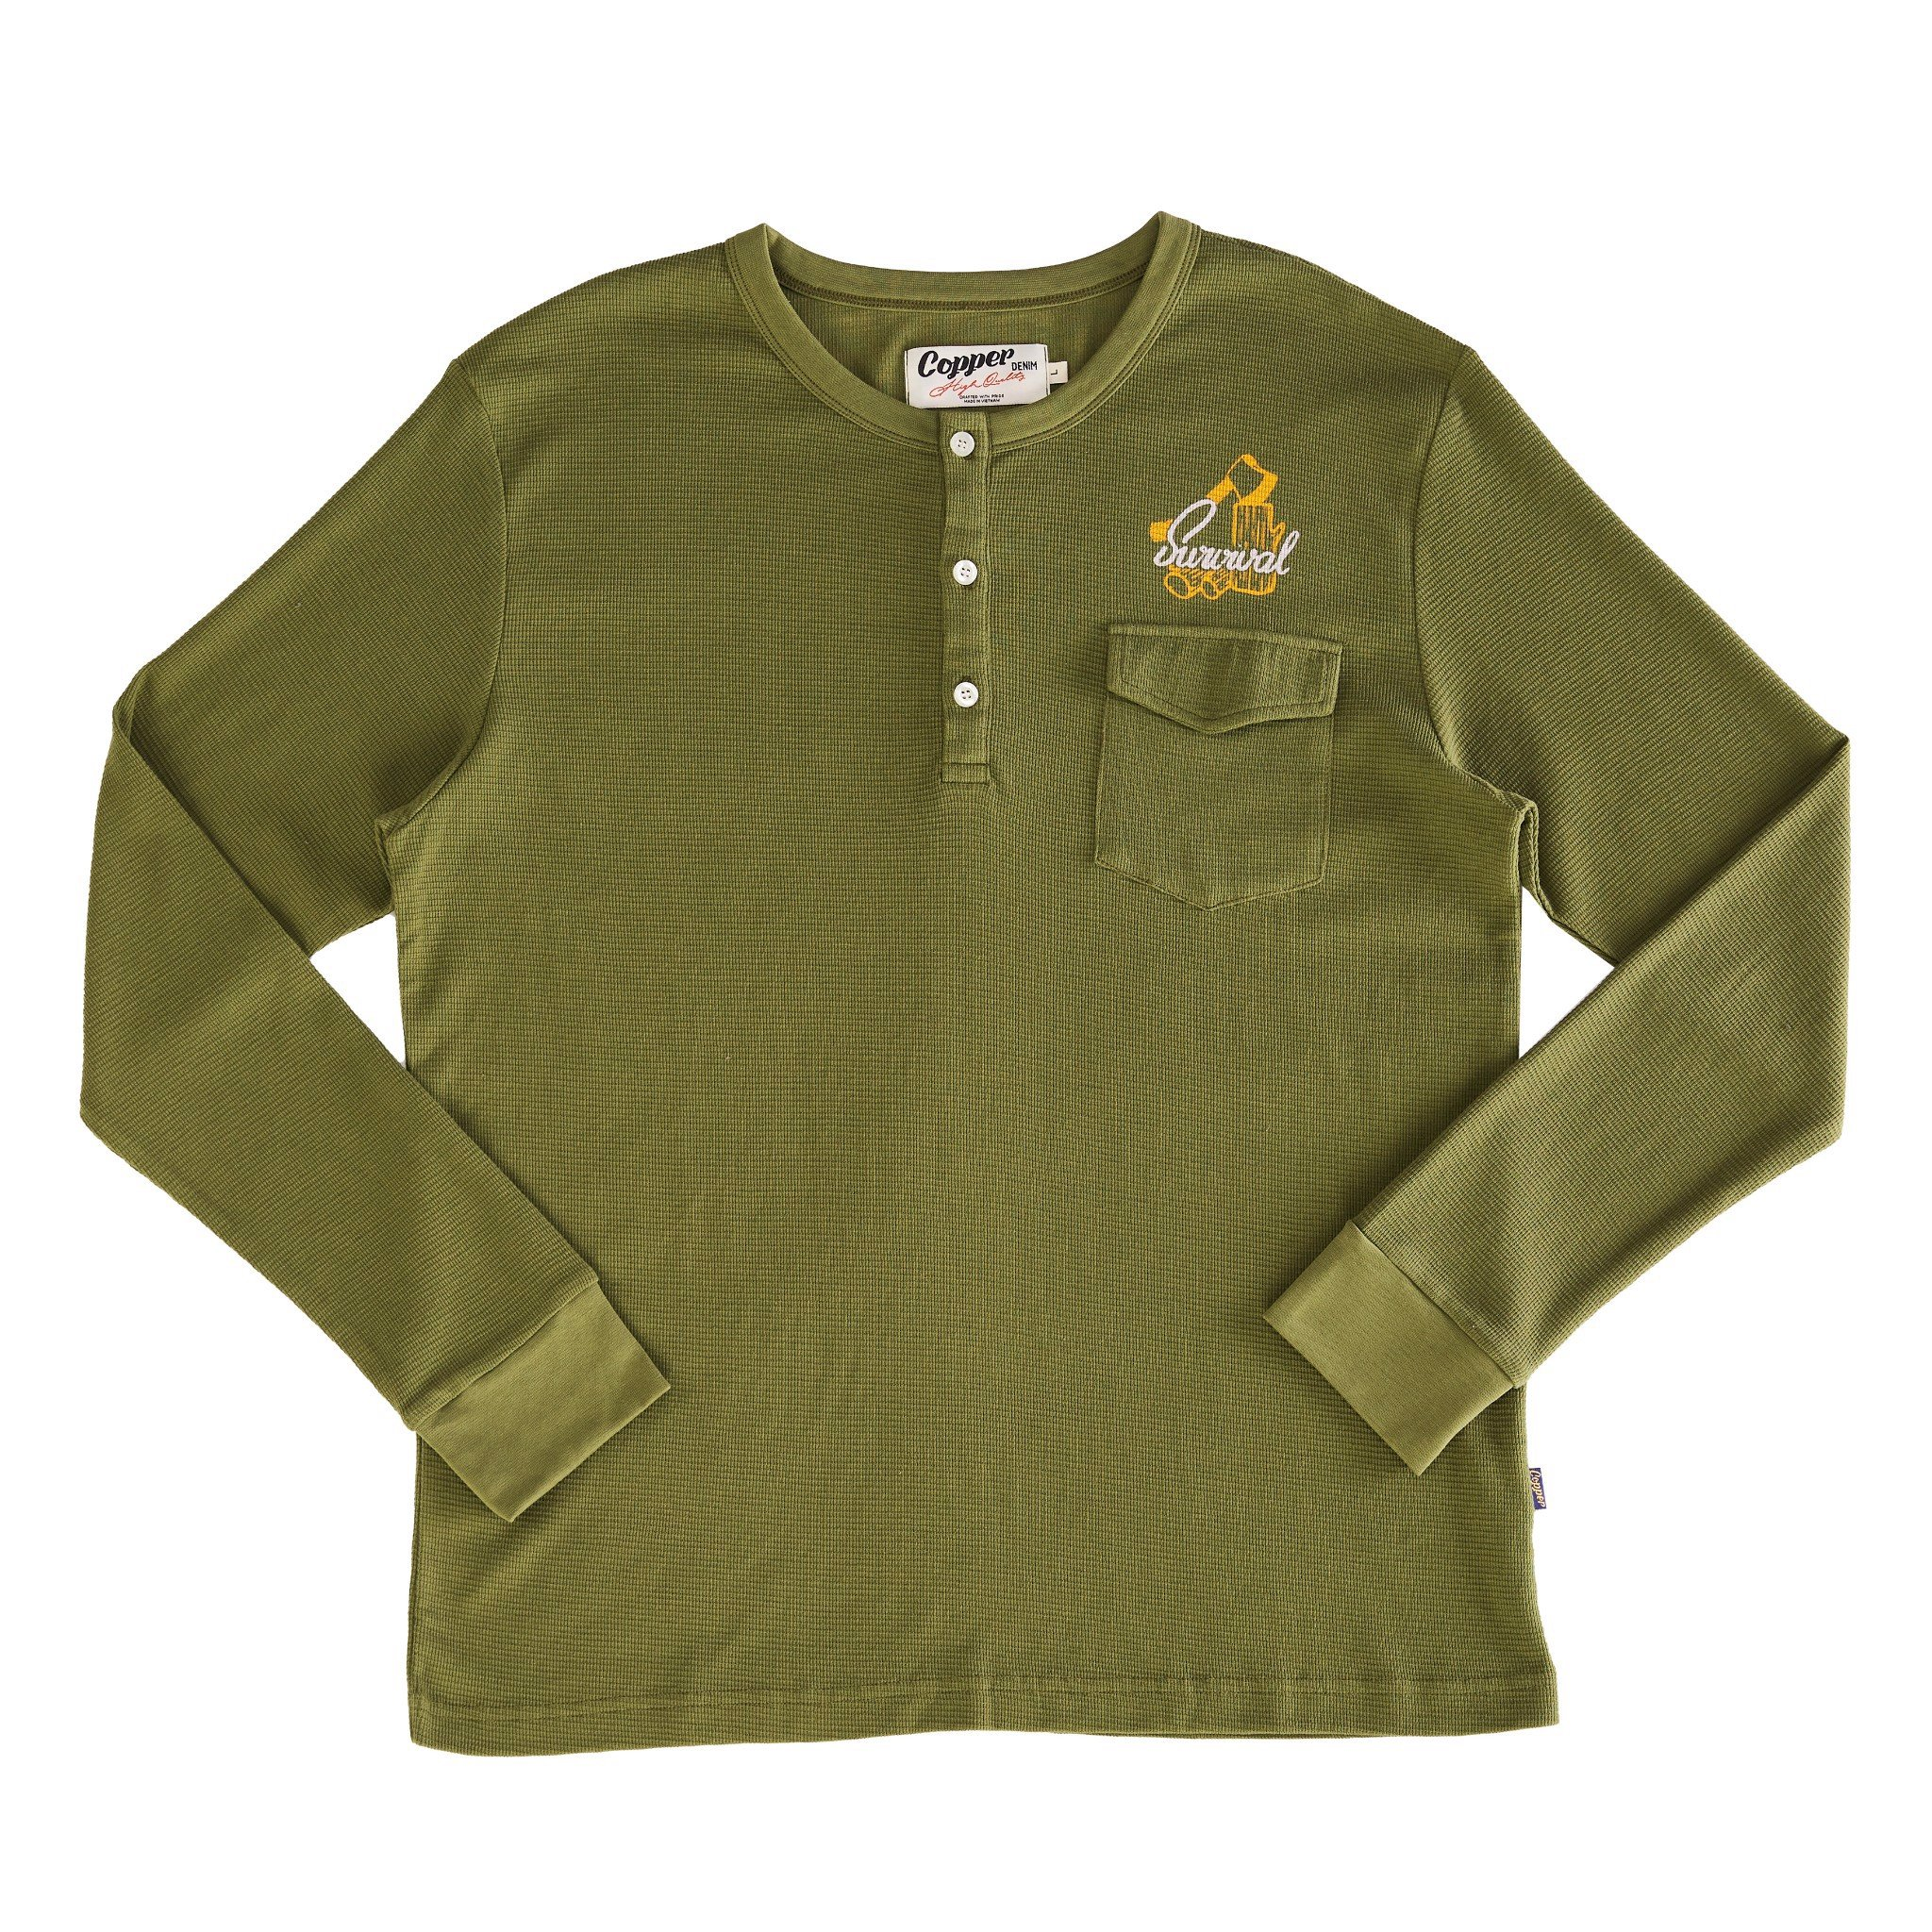 Copper Survival Leaf-Green Waffle Long Sleeves - Cổ Trụ